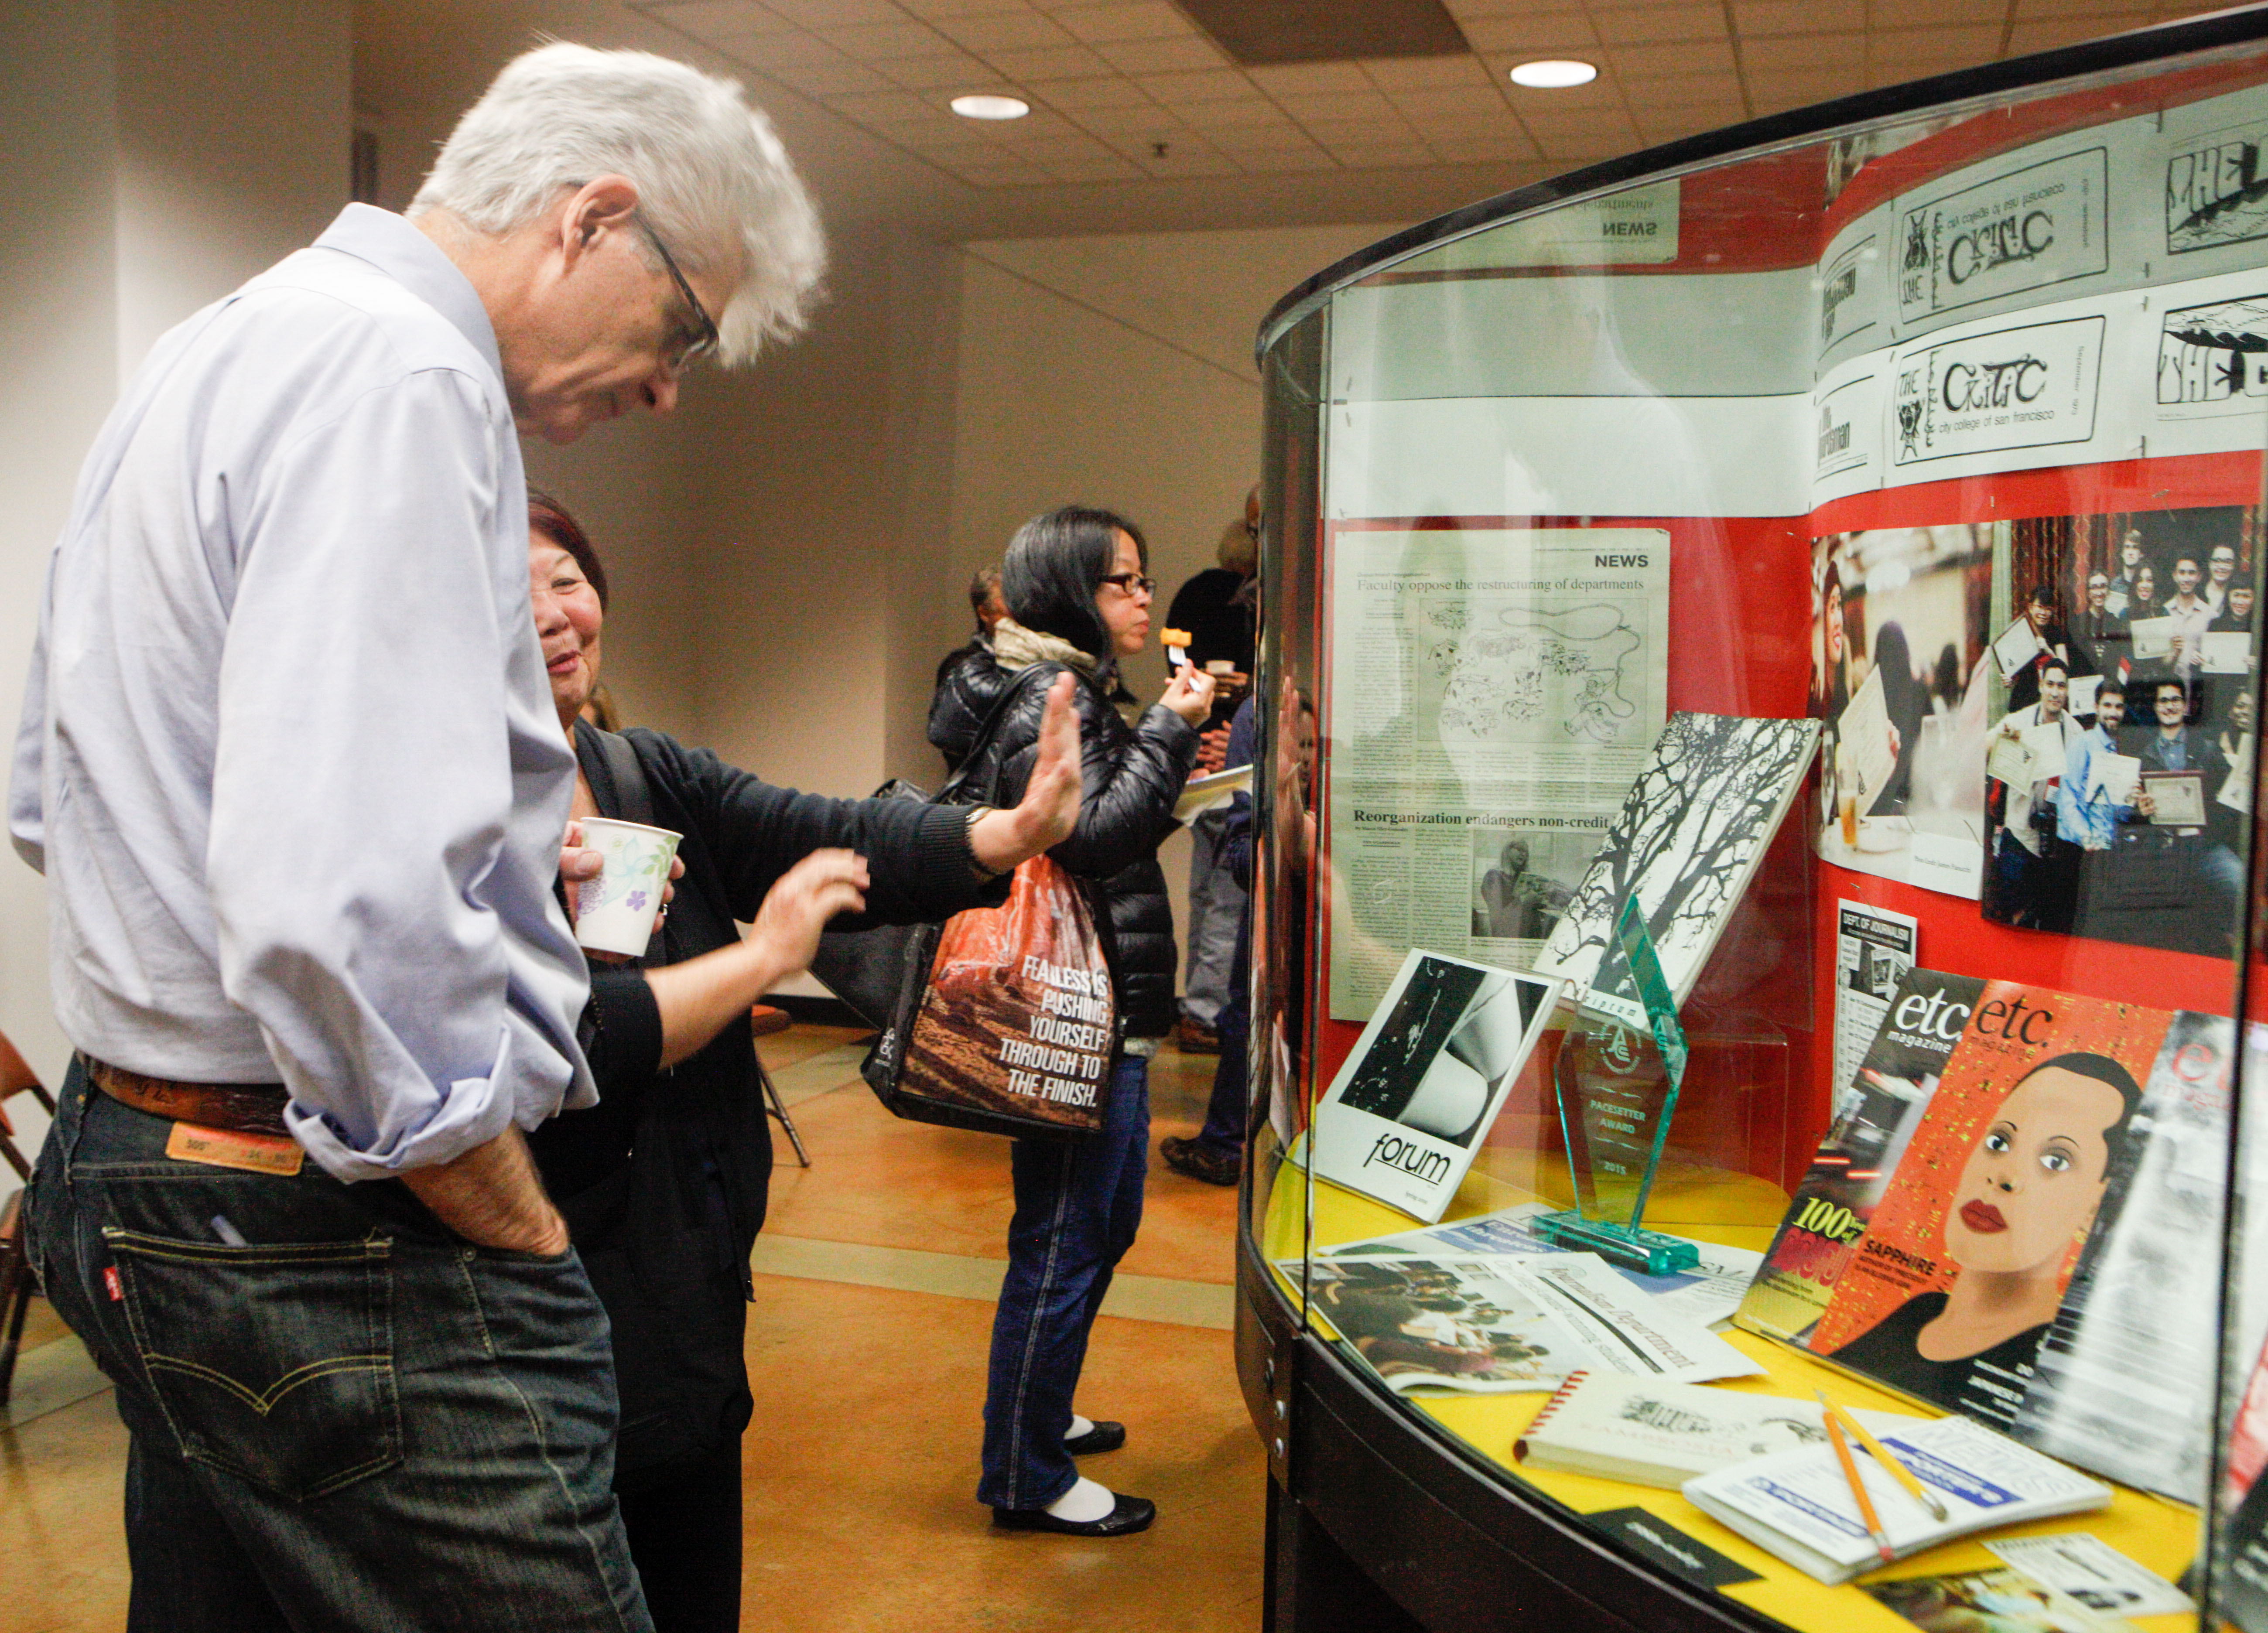 Attendees of the 80th Anniversary celebration of City College's newspaper, The Guardsman, view photos and historical information on display in the Rosenberg Library on Thursday Nov. 12, 2015. (Photo by Fran Smith/ The Guardsman)